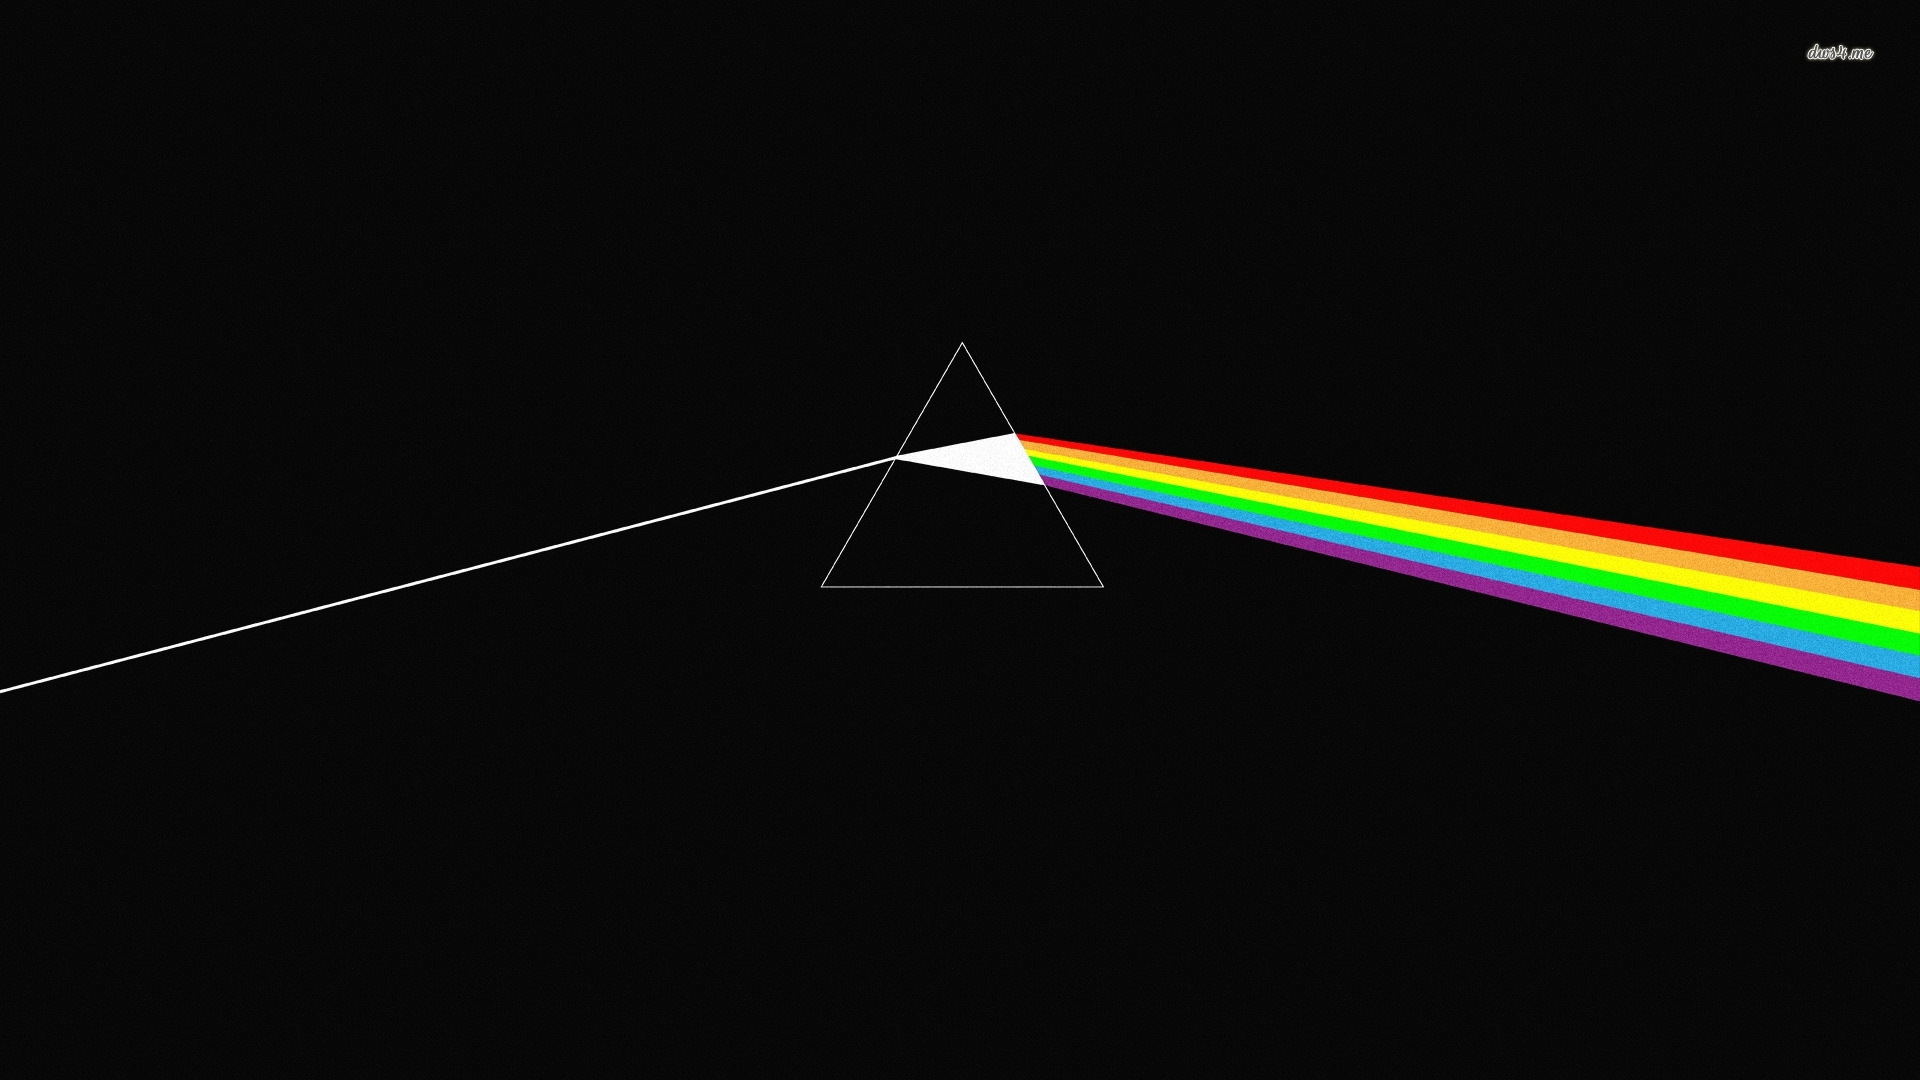 10 Top Pink Floyd Dark Side Of The Moon Wallpapers Full Hd 1920 1080